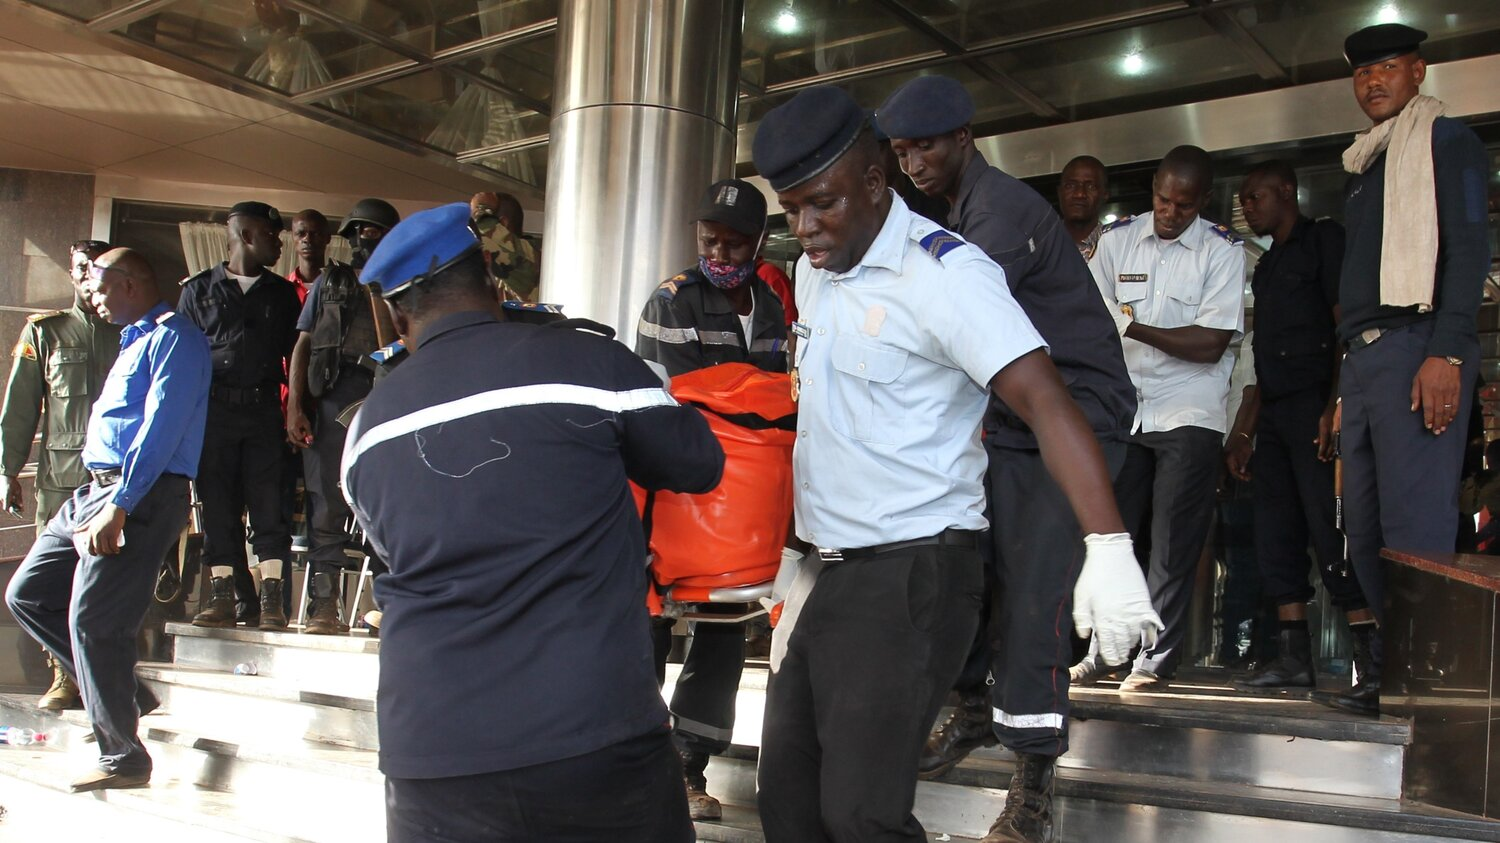 Officers in Mali evacuate bodies of victims from the Radisson Blu hotel in the capital of Bamako Friday, after gunmen seized the hotel and trapped people inside. (Habibou Kouyate/AFP/Getty Images)